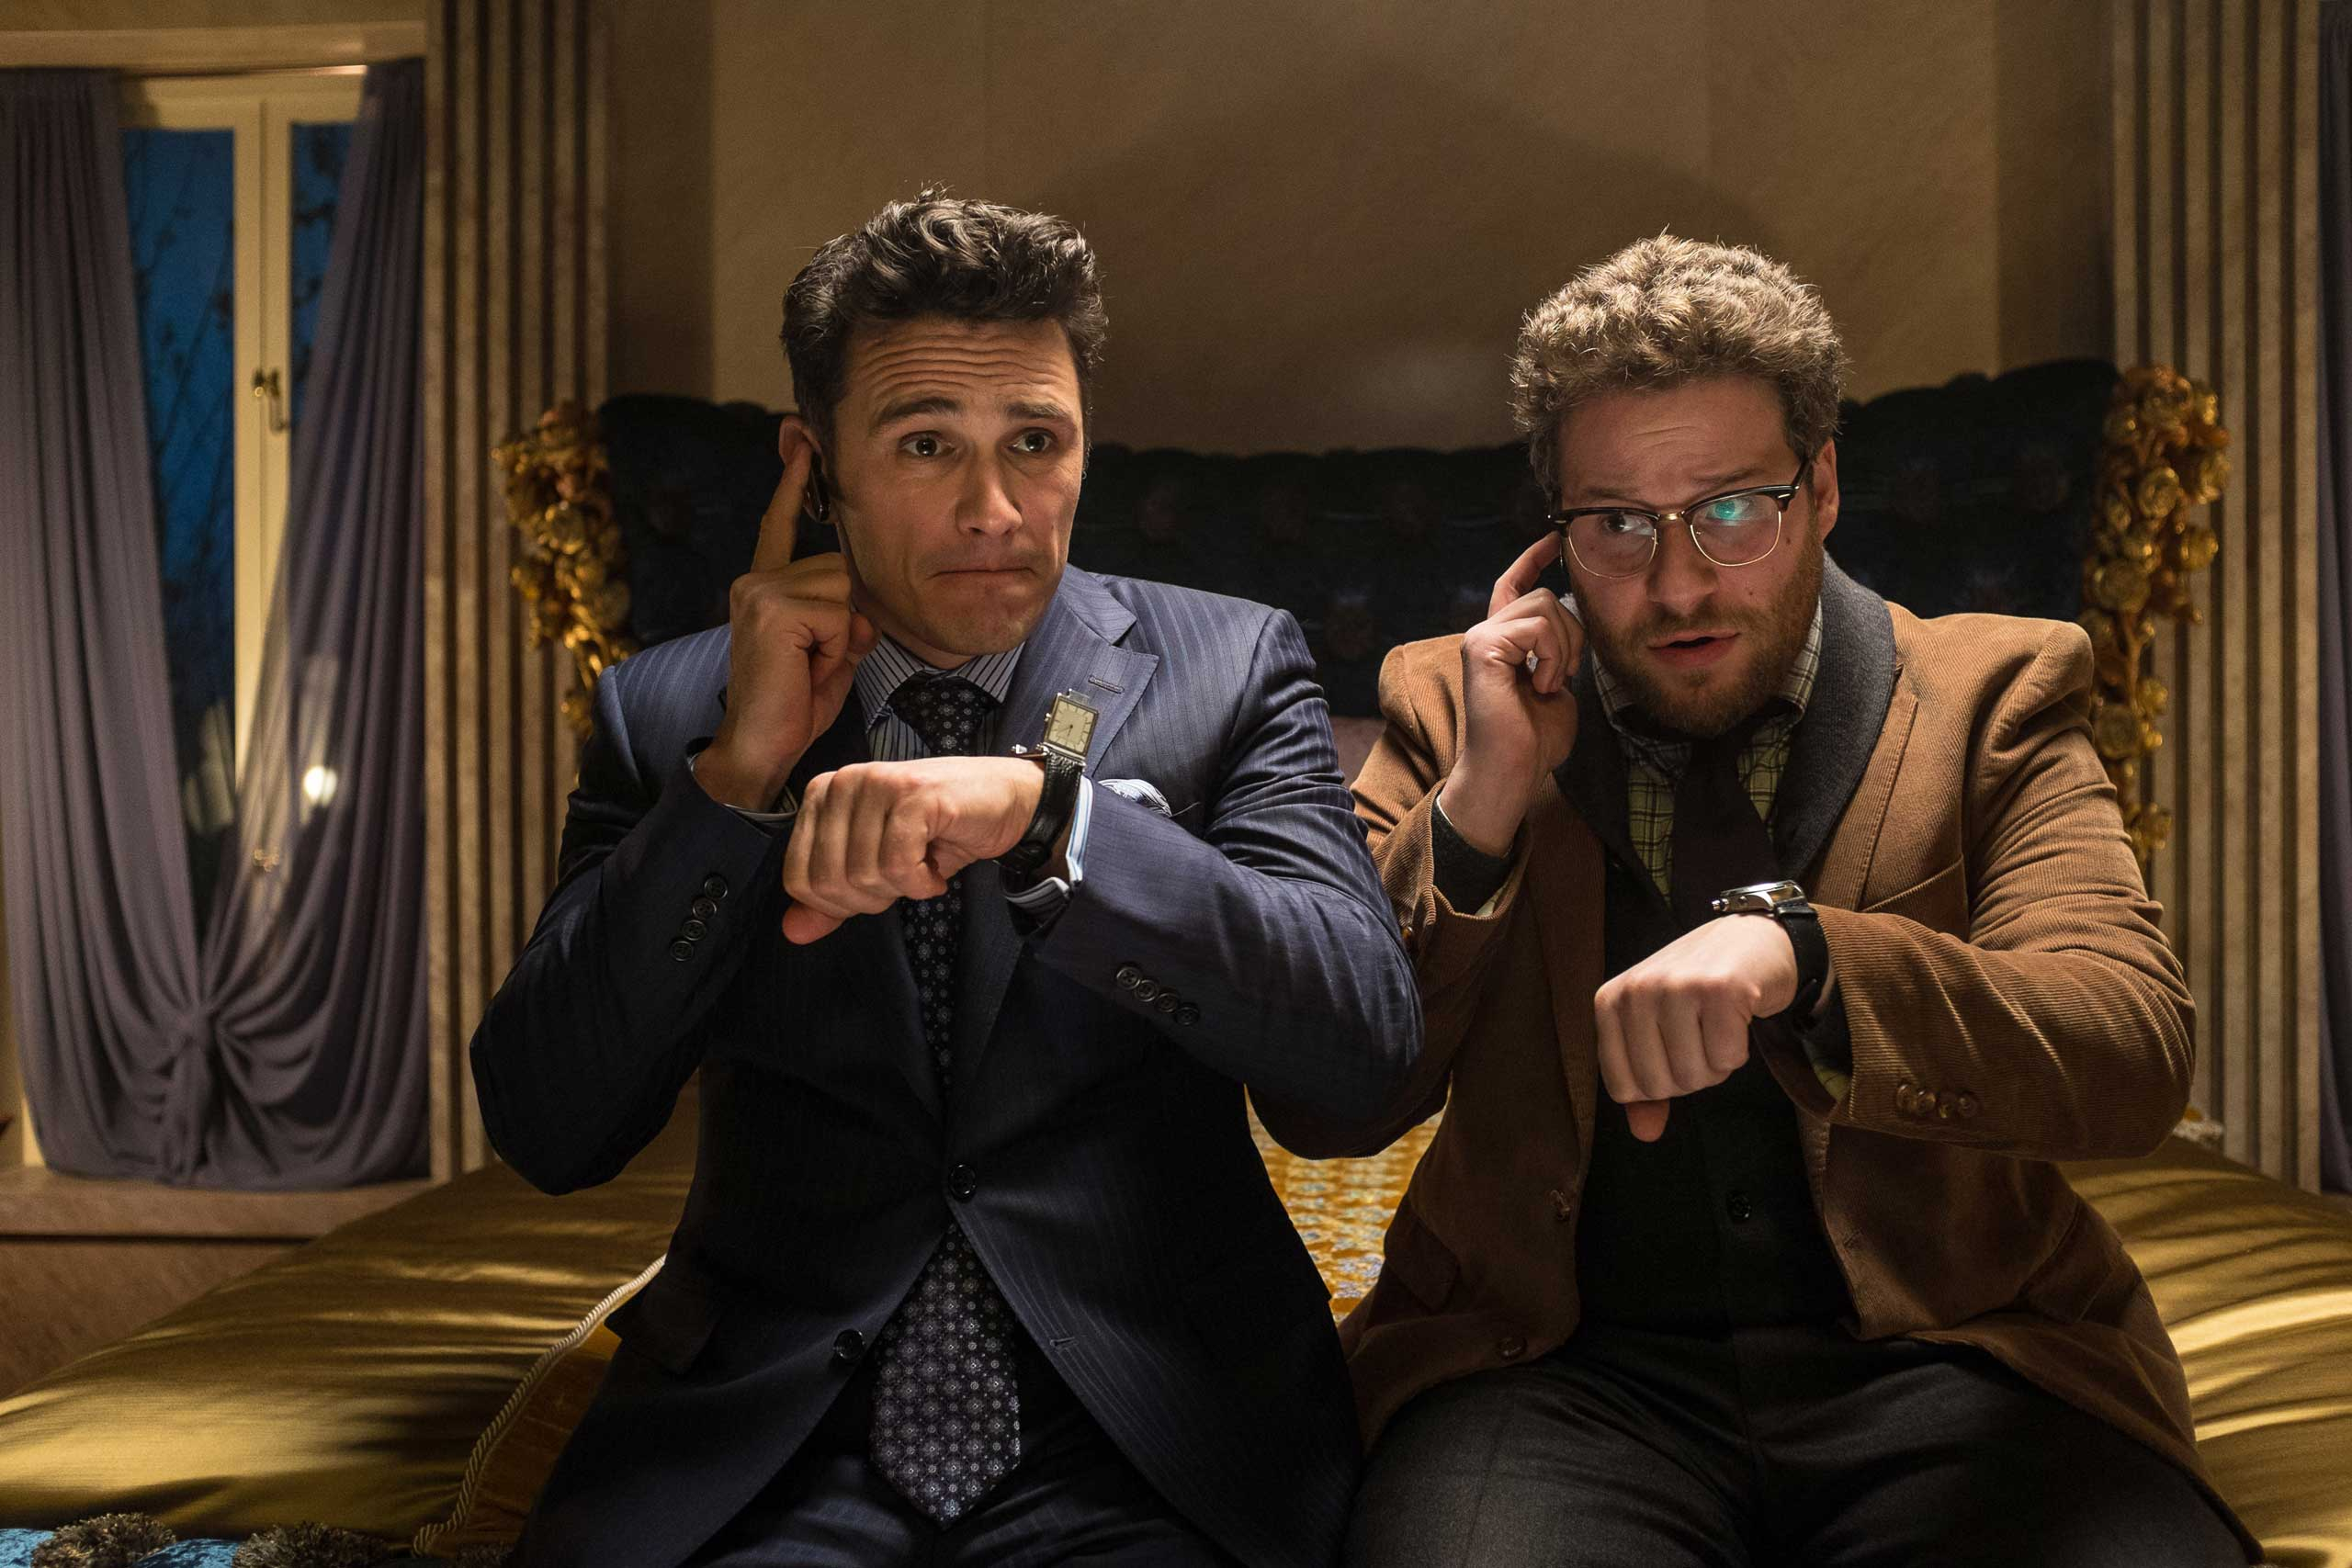 James Franco, left, as Dave, and Seth Rogen as Aaron, in a scene from  The Interview.